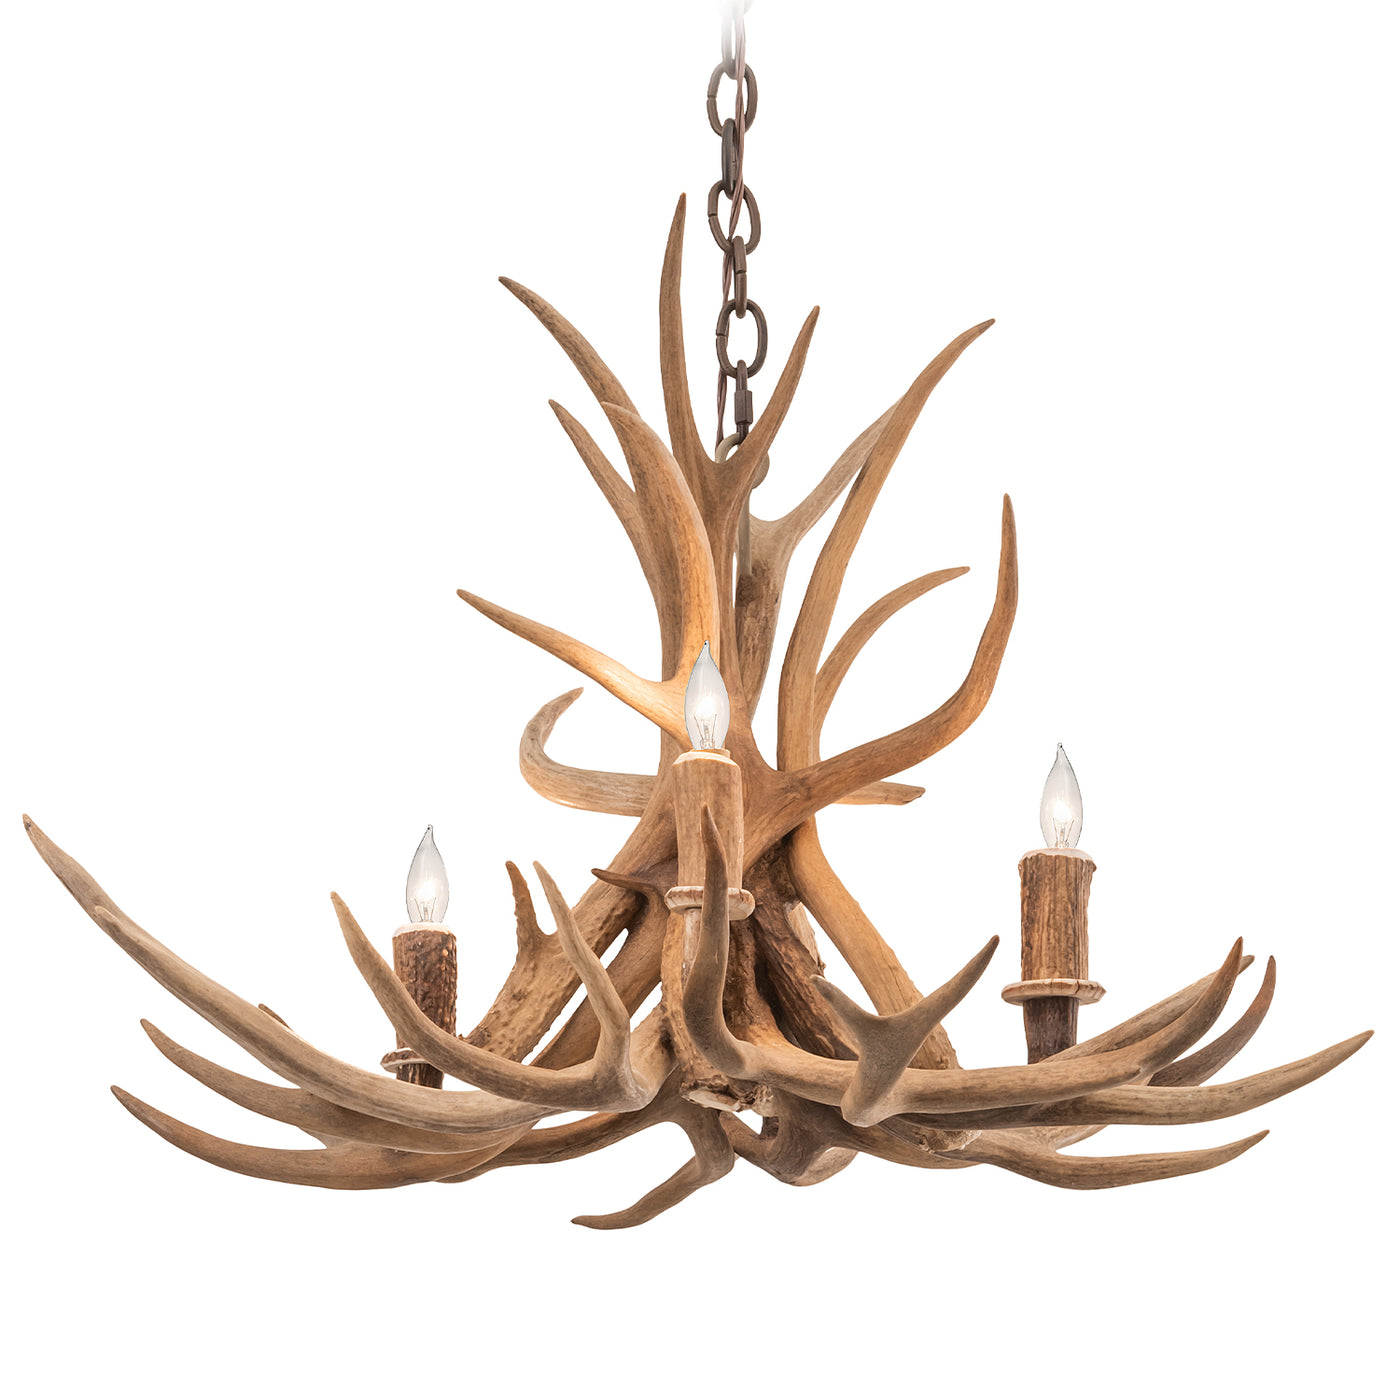 Style: Rustic & Lodge Lighting Fixtures